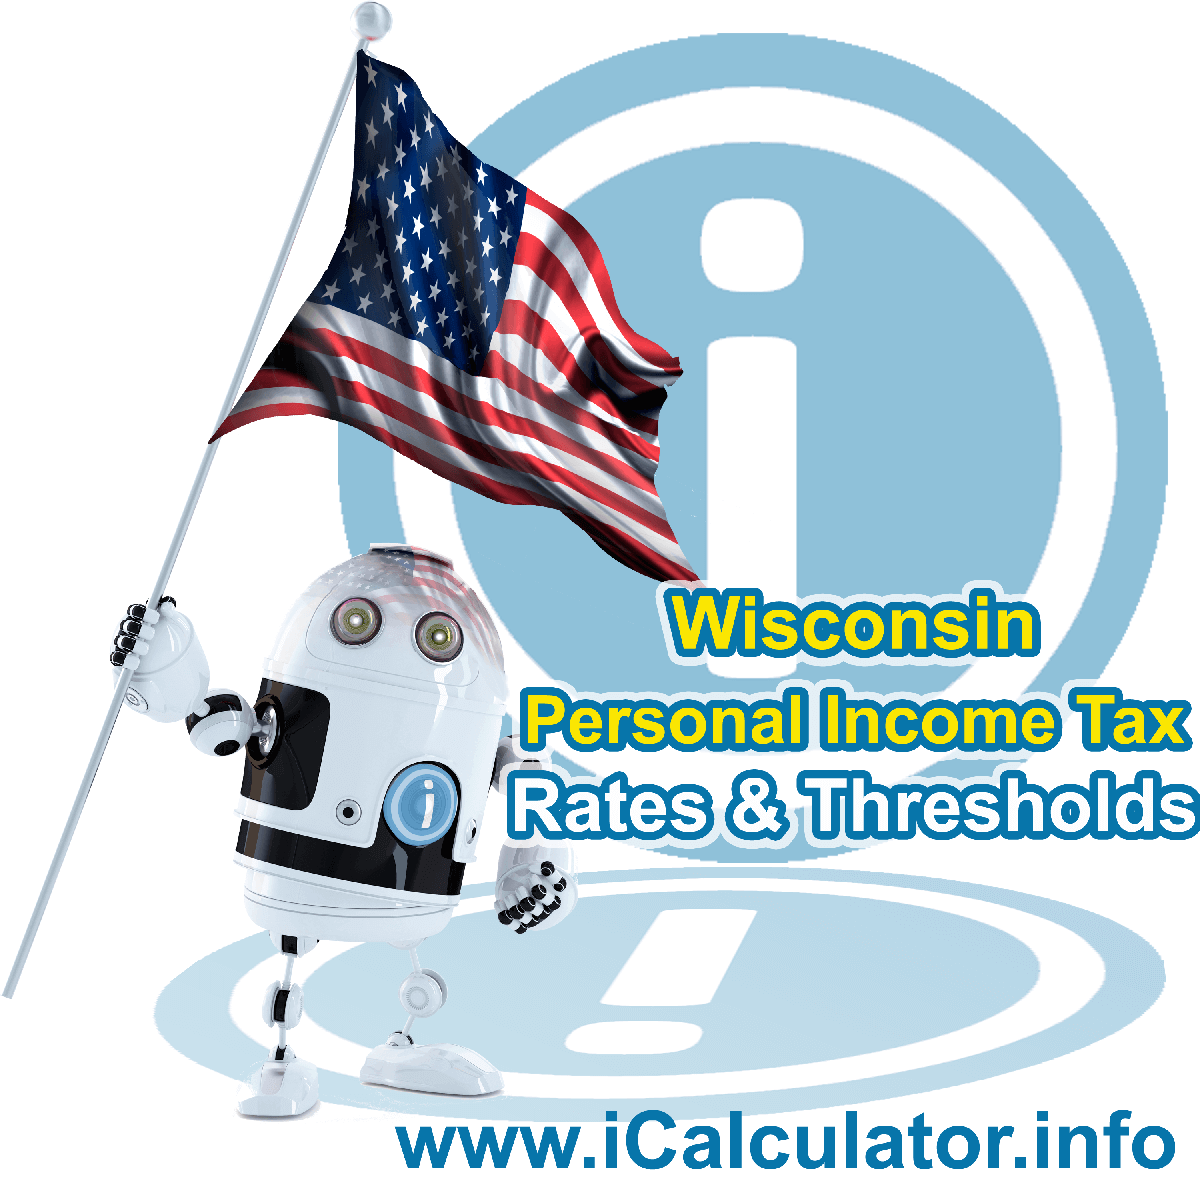 Wisconsin State Tax Tables 2020. This image displays details of the Wisconsin State Tax Tables for the 2020 tax return year which is provided in support of the 2020 US Tax Calculator